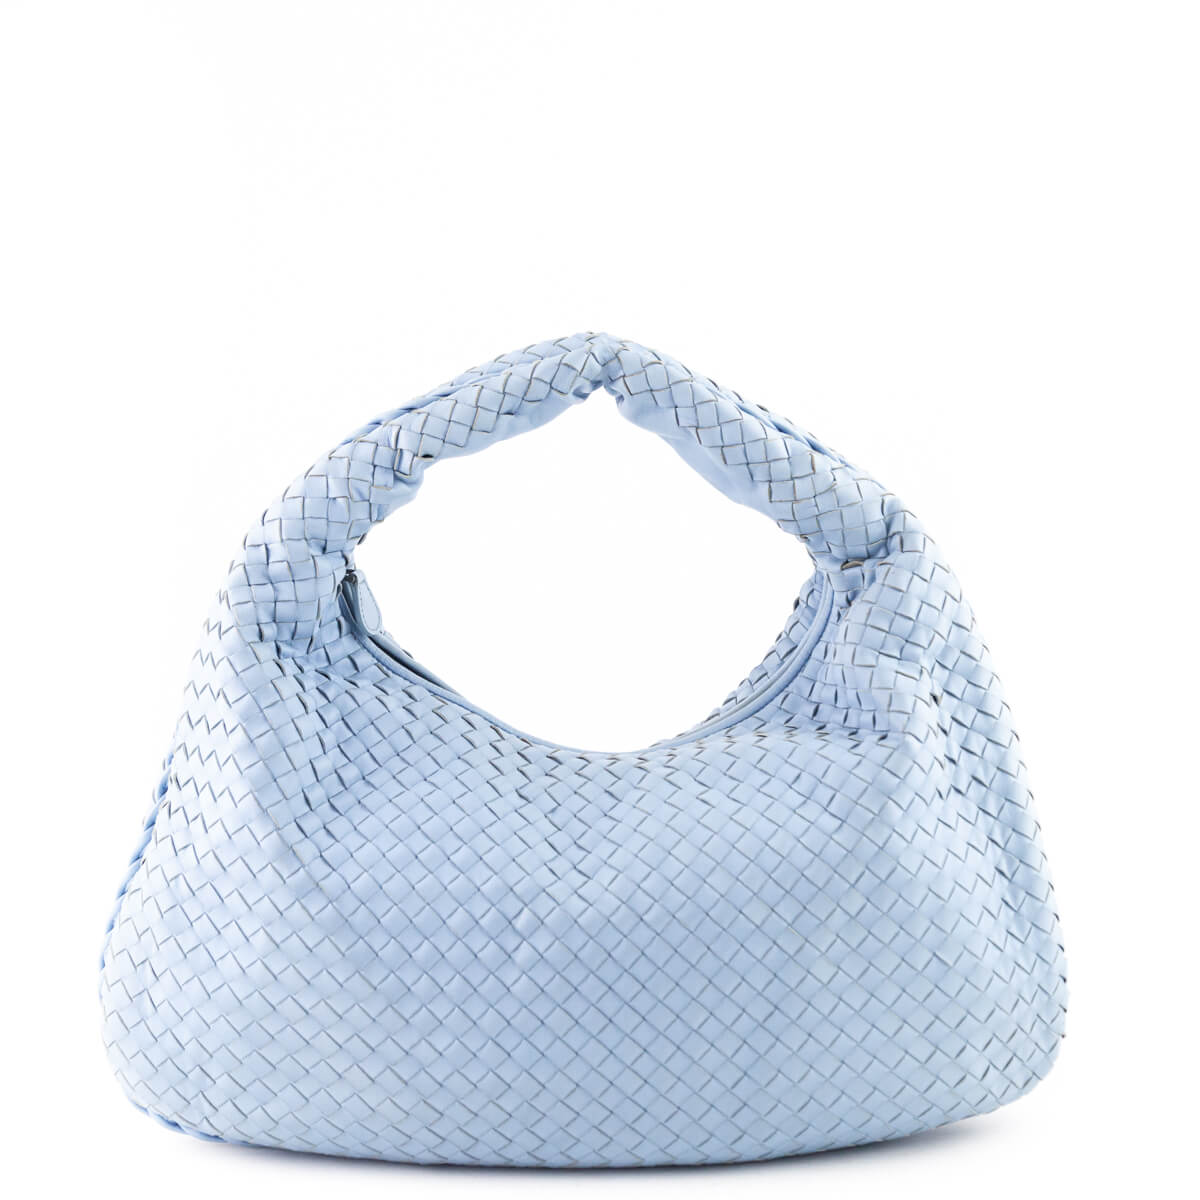 99f9b0c57b Bottega Veneta Light Blue Intrecciato Nappa Large Veneta Bag - LOVE that BAG  - Preowned Authentic ...